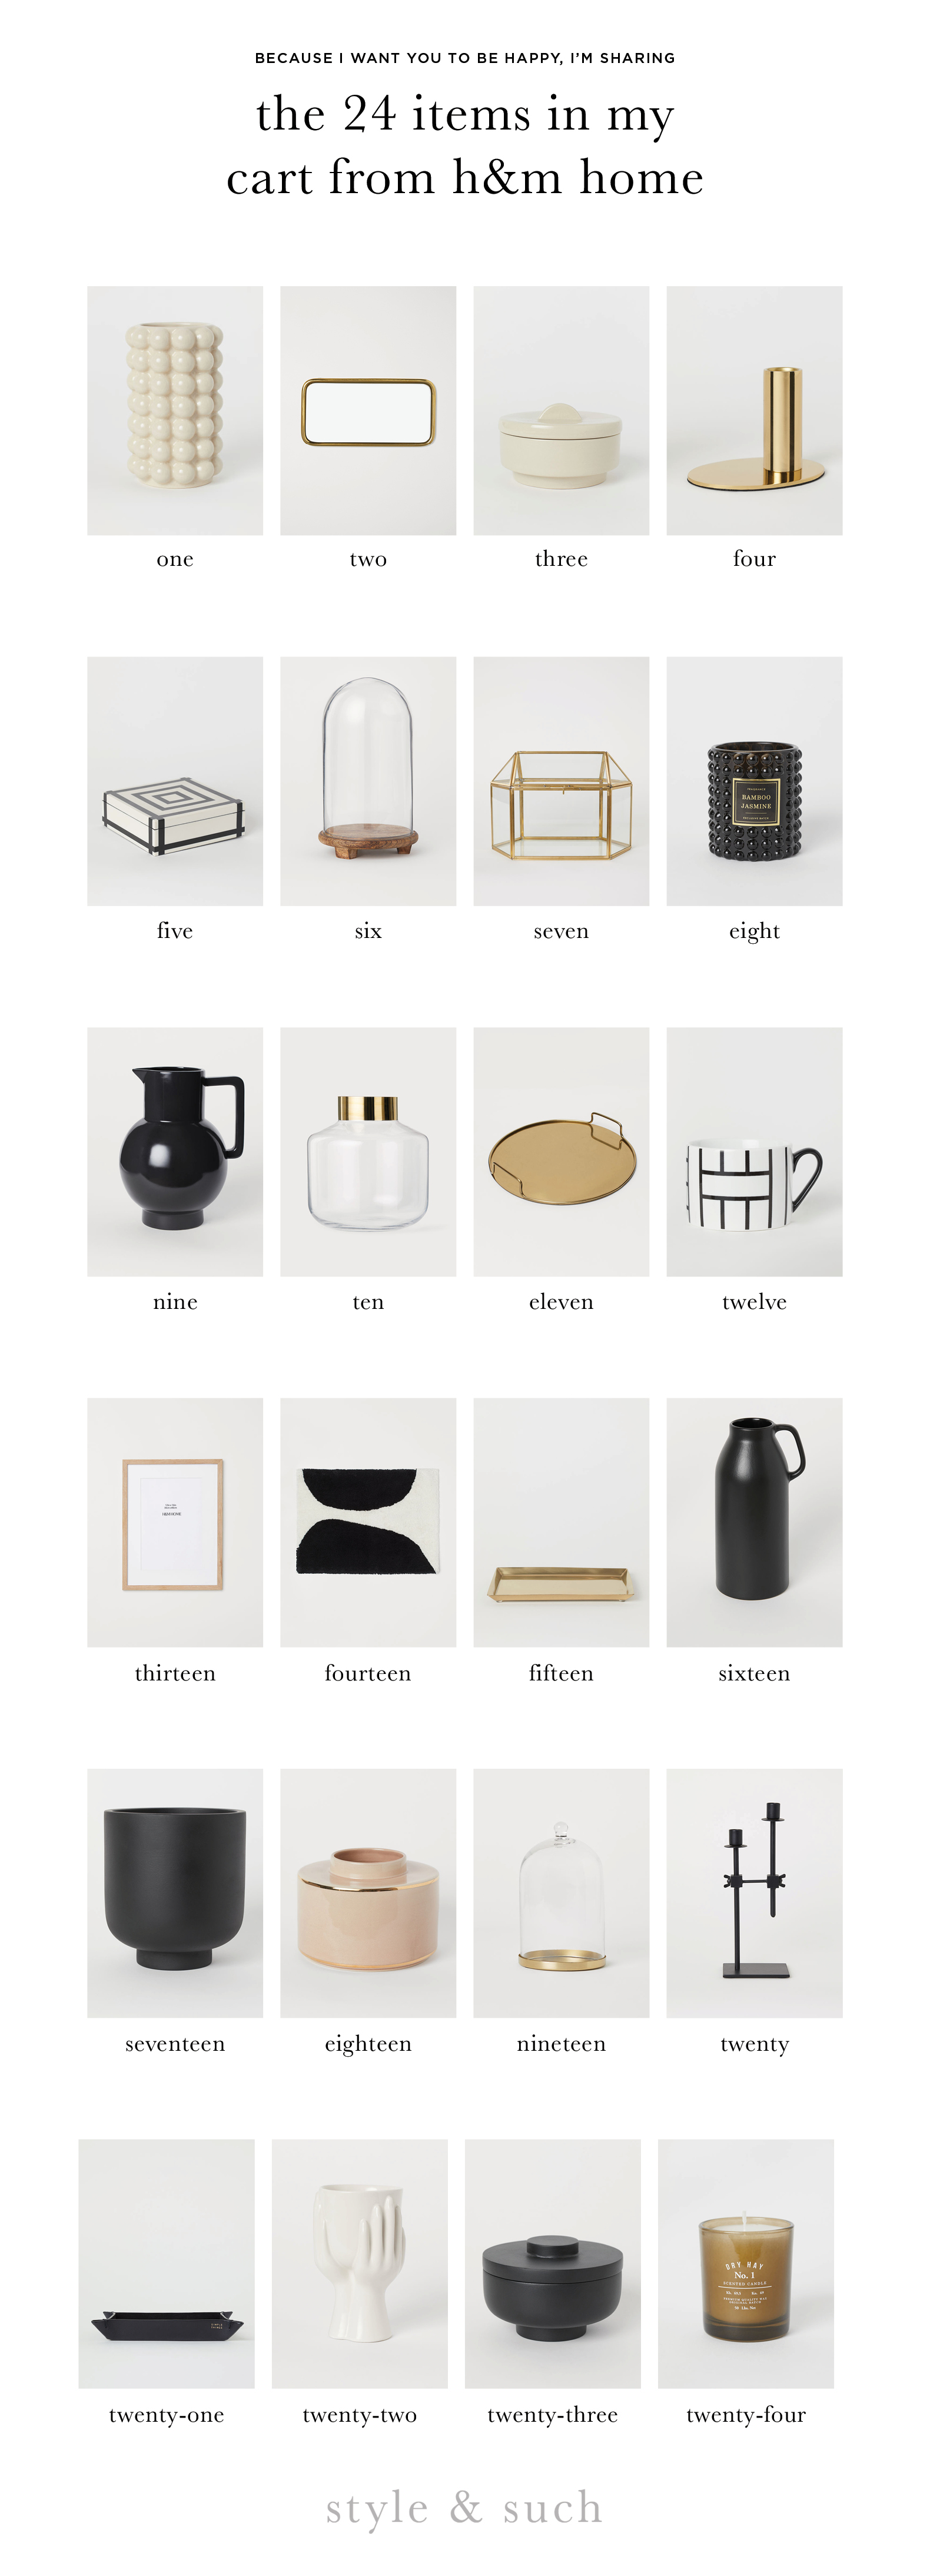 1.  Tall Vase  | 2.  Mirrored Tray  | 3.  Stoneware Pot  | 4.  Candlestick  | 5.  Jar with Lid  | 6.  Glass Dome with Wooden Base  | 7.  Mini Greenhouse  | 8.  Candle  | 9.  Stoneware Carafe  | 10.  Vase  | 11.  Round Metal Tray  | 12.  Mug  | 13.  Frame  | 14.  Bath Mat  | 15.  Small Metal Tray  | 16.  Tall Stoneware Vase  | 17.  Plant Pot  | 18.  Vase  | 19.  Glass Dome  | 20.  Candlestick  | 21.  Leather Tray  | 22.  Stoneware Vase  | 23.  Wooden Pot  | 24.  Candle